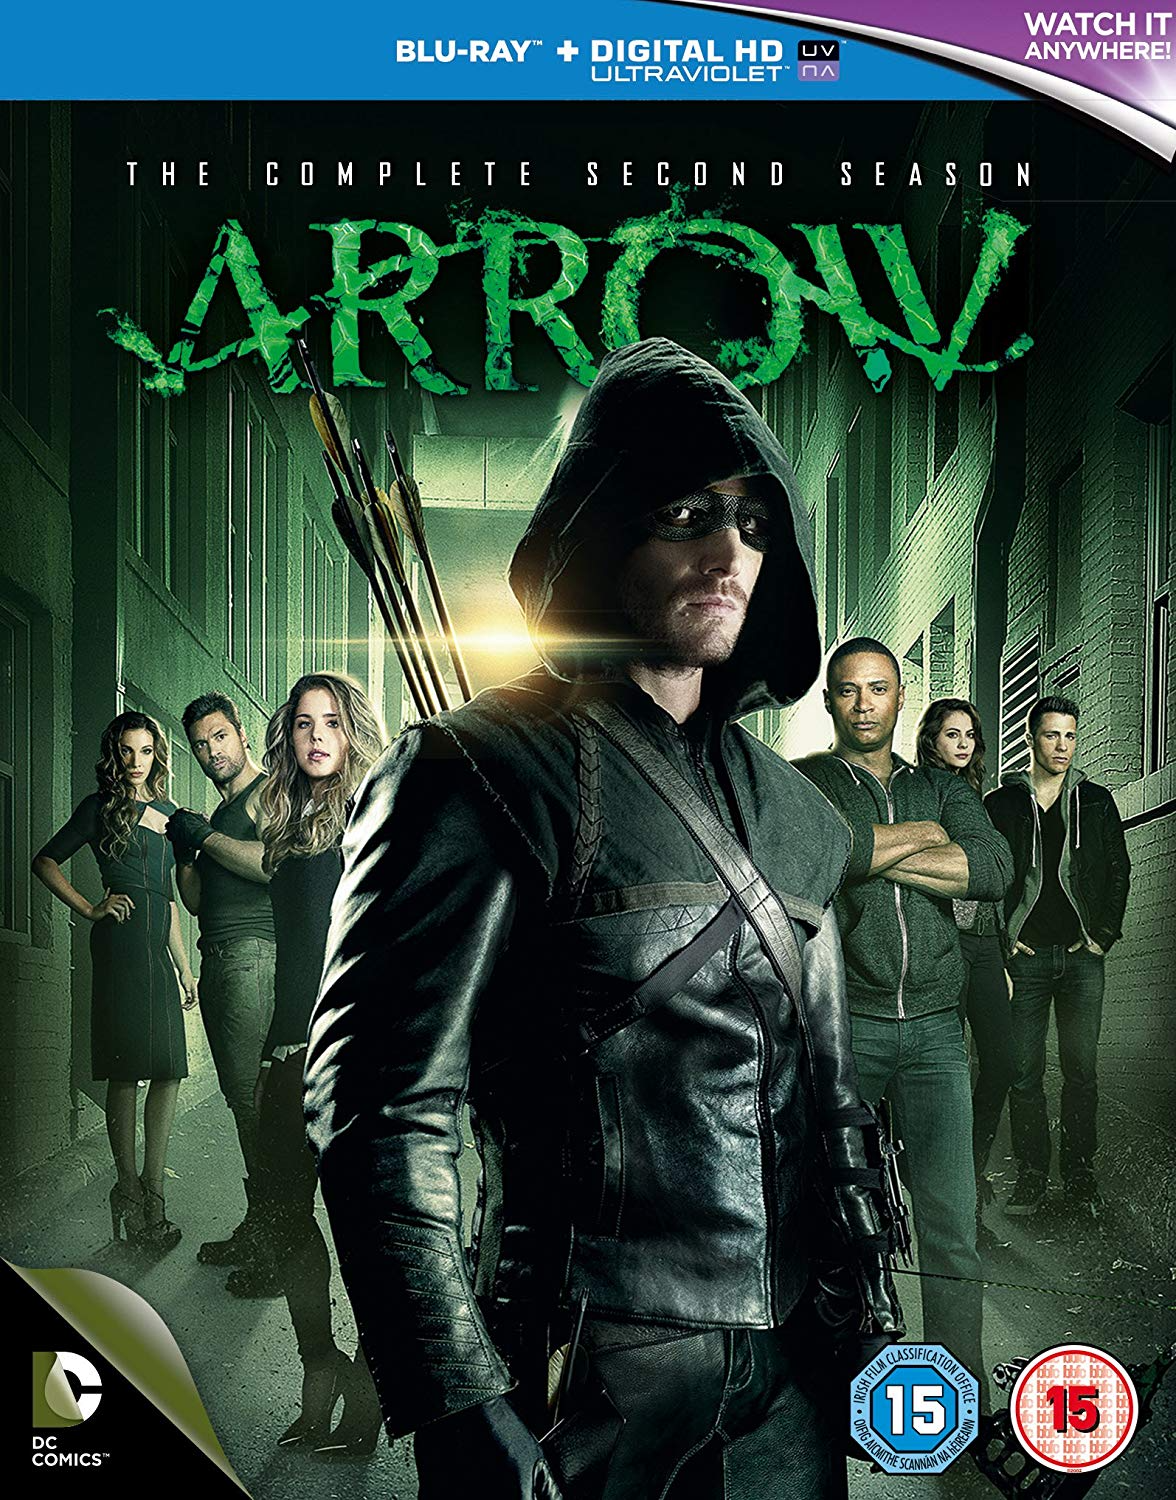 Arrow - The Complete Second Season region B cover.png